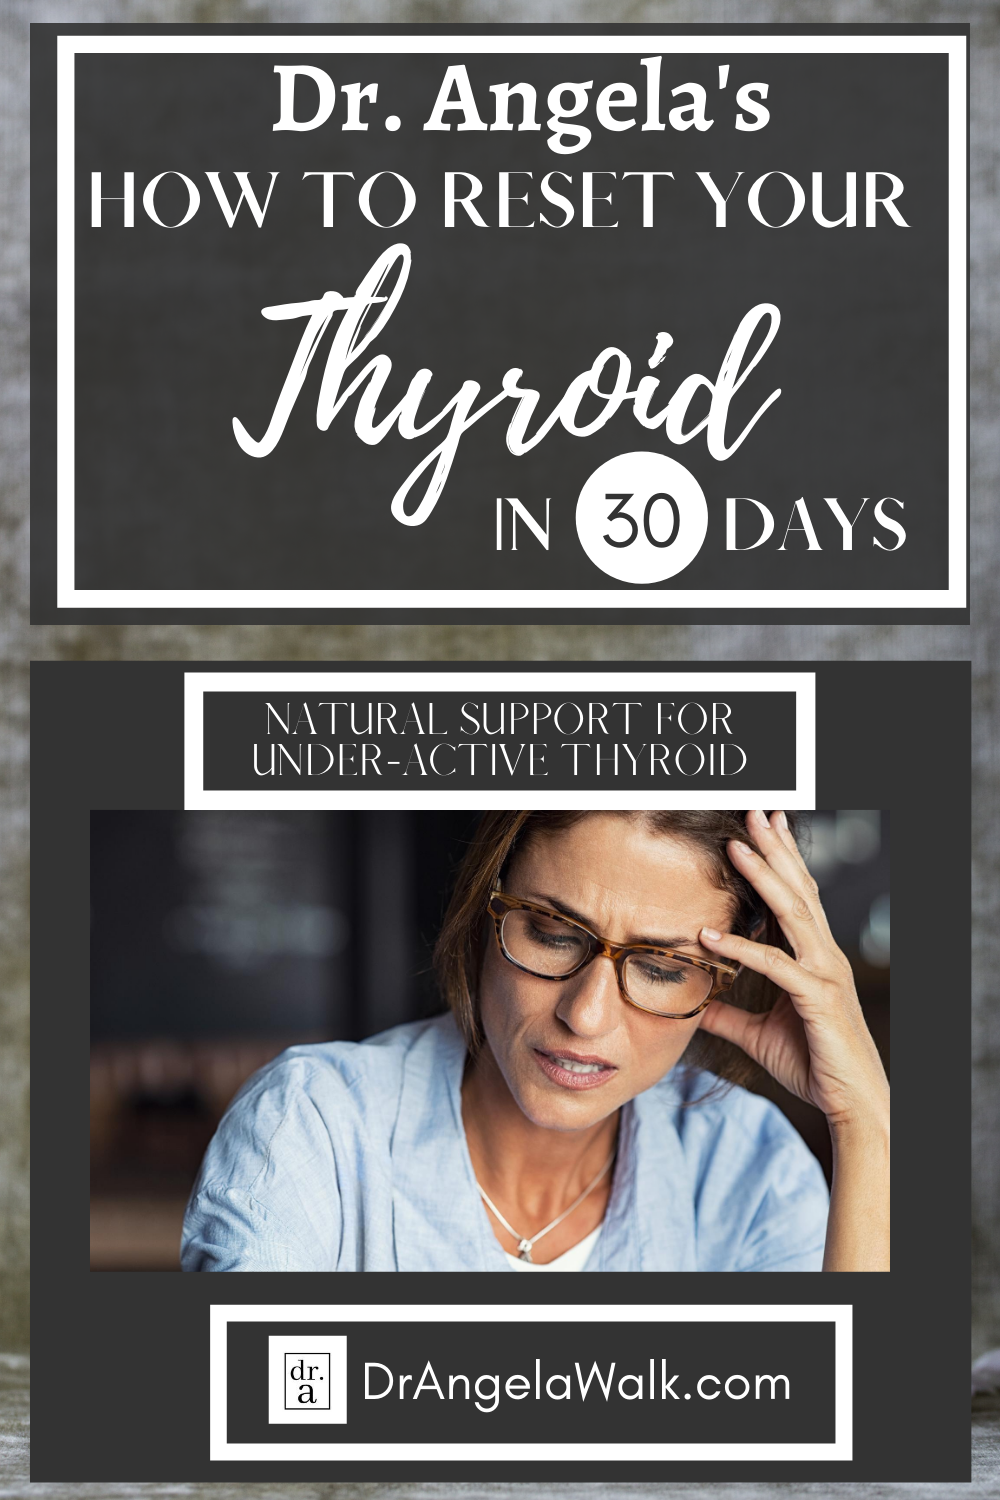 Natural Remedies for Thyroid Support - Supplements, Essential Oils & Nutritional Recommendations